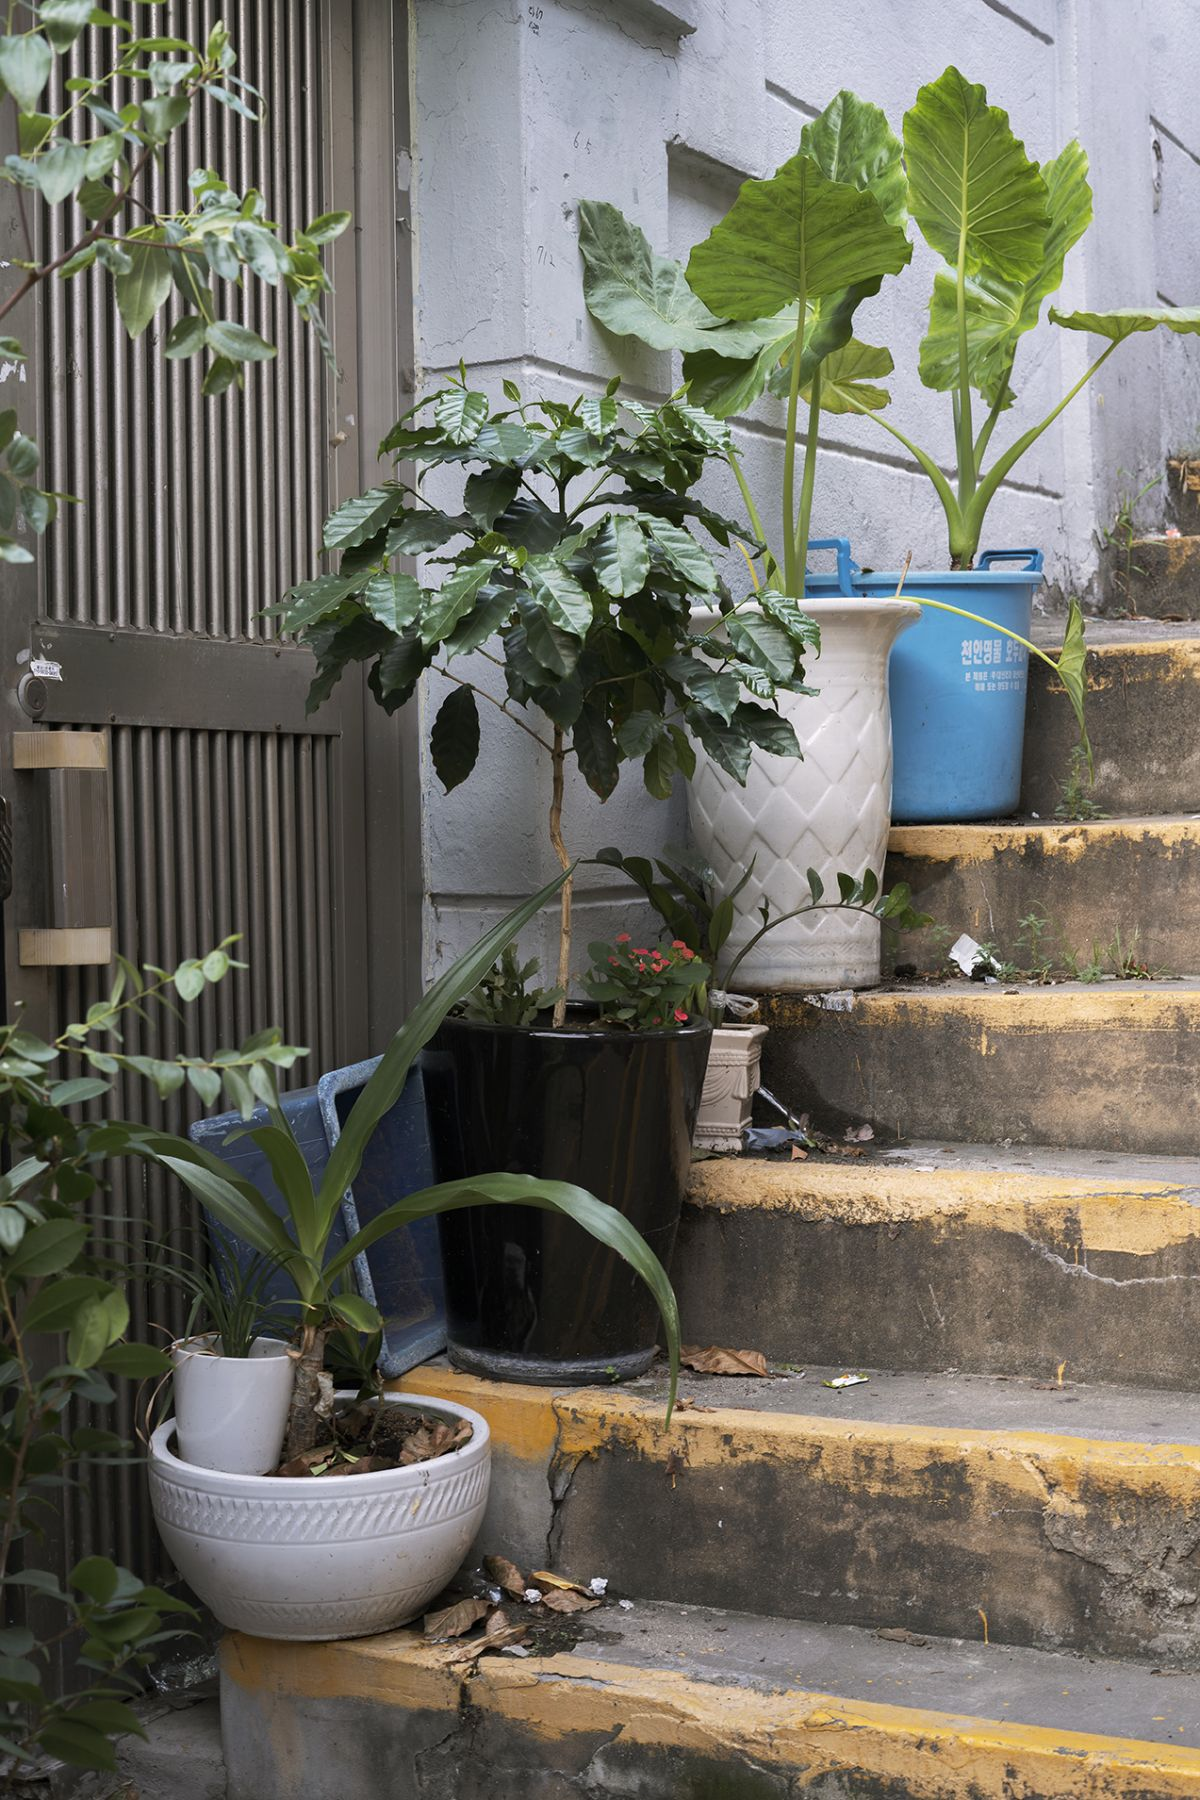 JINYOUNGKIM |SINDANG AREA 9, POTTED PLANTS ON THE STAIRS |C-PRINT MOUNTED ON DIBOND|30X20INCHES |EDITION 1 OF 5 |2019